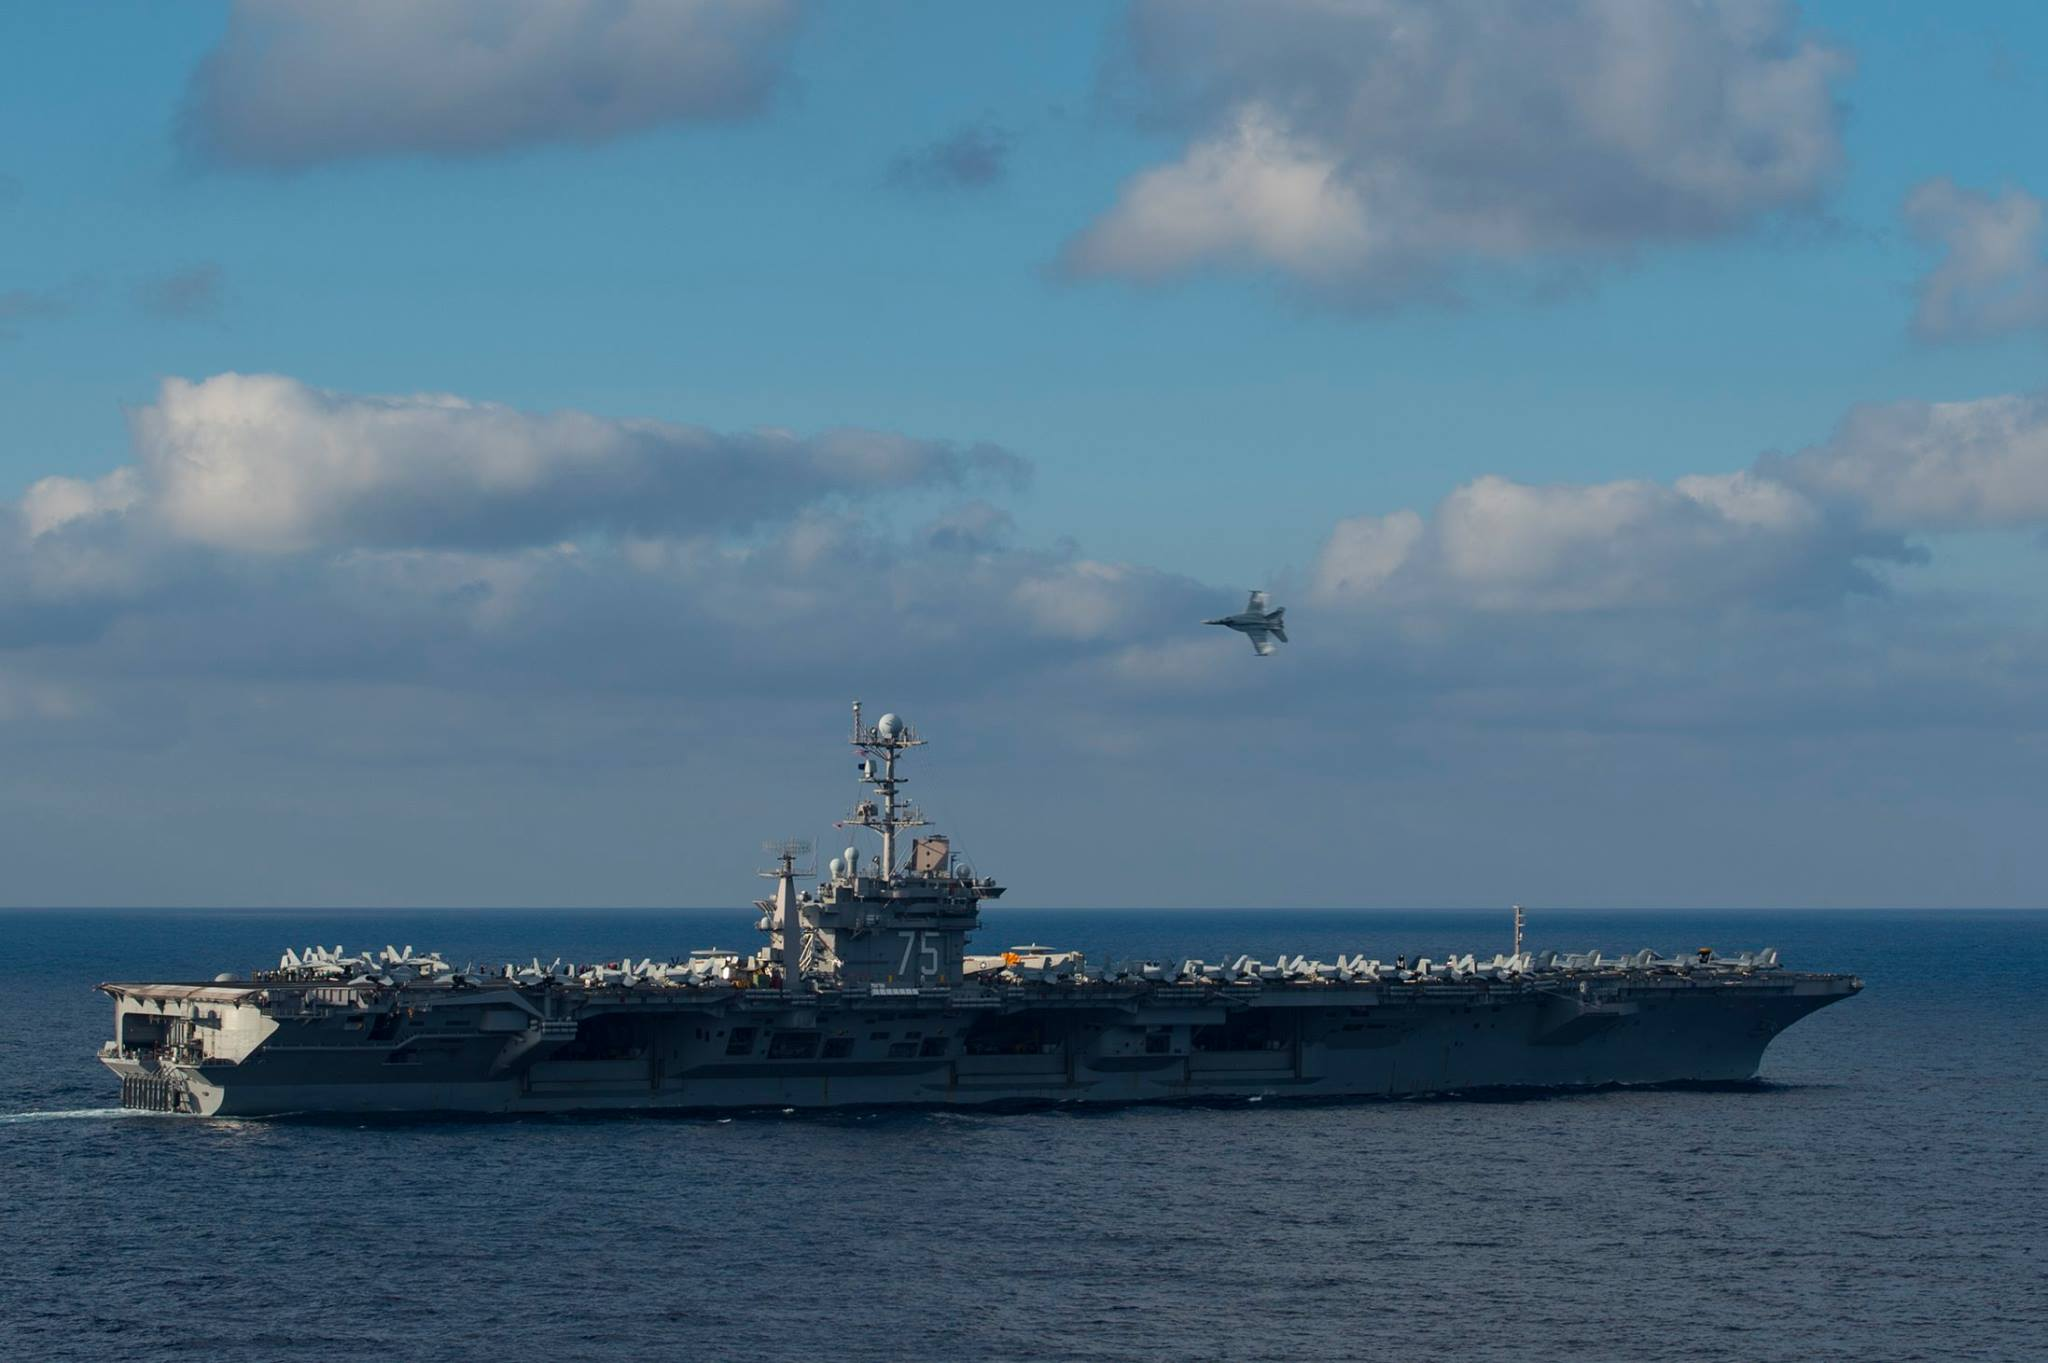 An F/A-18E Super Hornet assigned to the Pukin' Dogs of Strike Fighter Squadron (VFA) 143 begins a supersonic flyby over the flight deck of the aircraft carrier USS Harry S. Truman (CVN-75) on Dec. 3, 2015. US Navy Photo